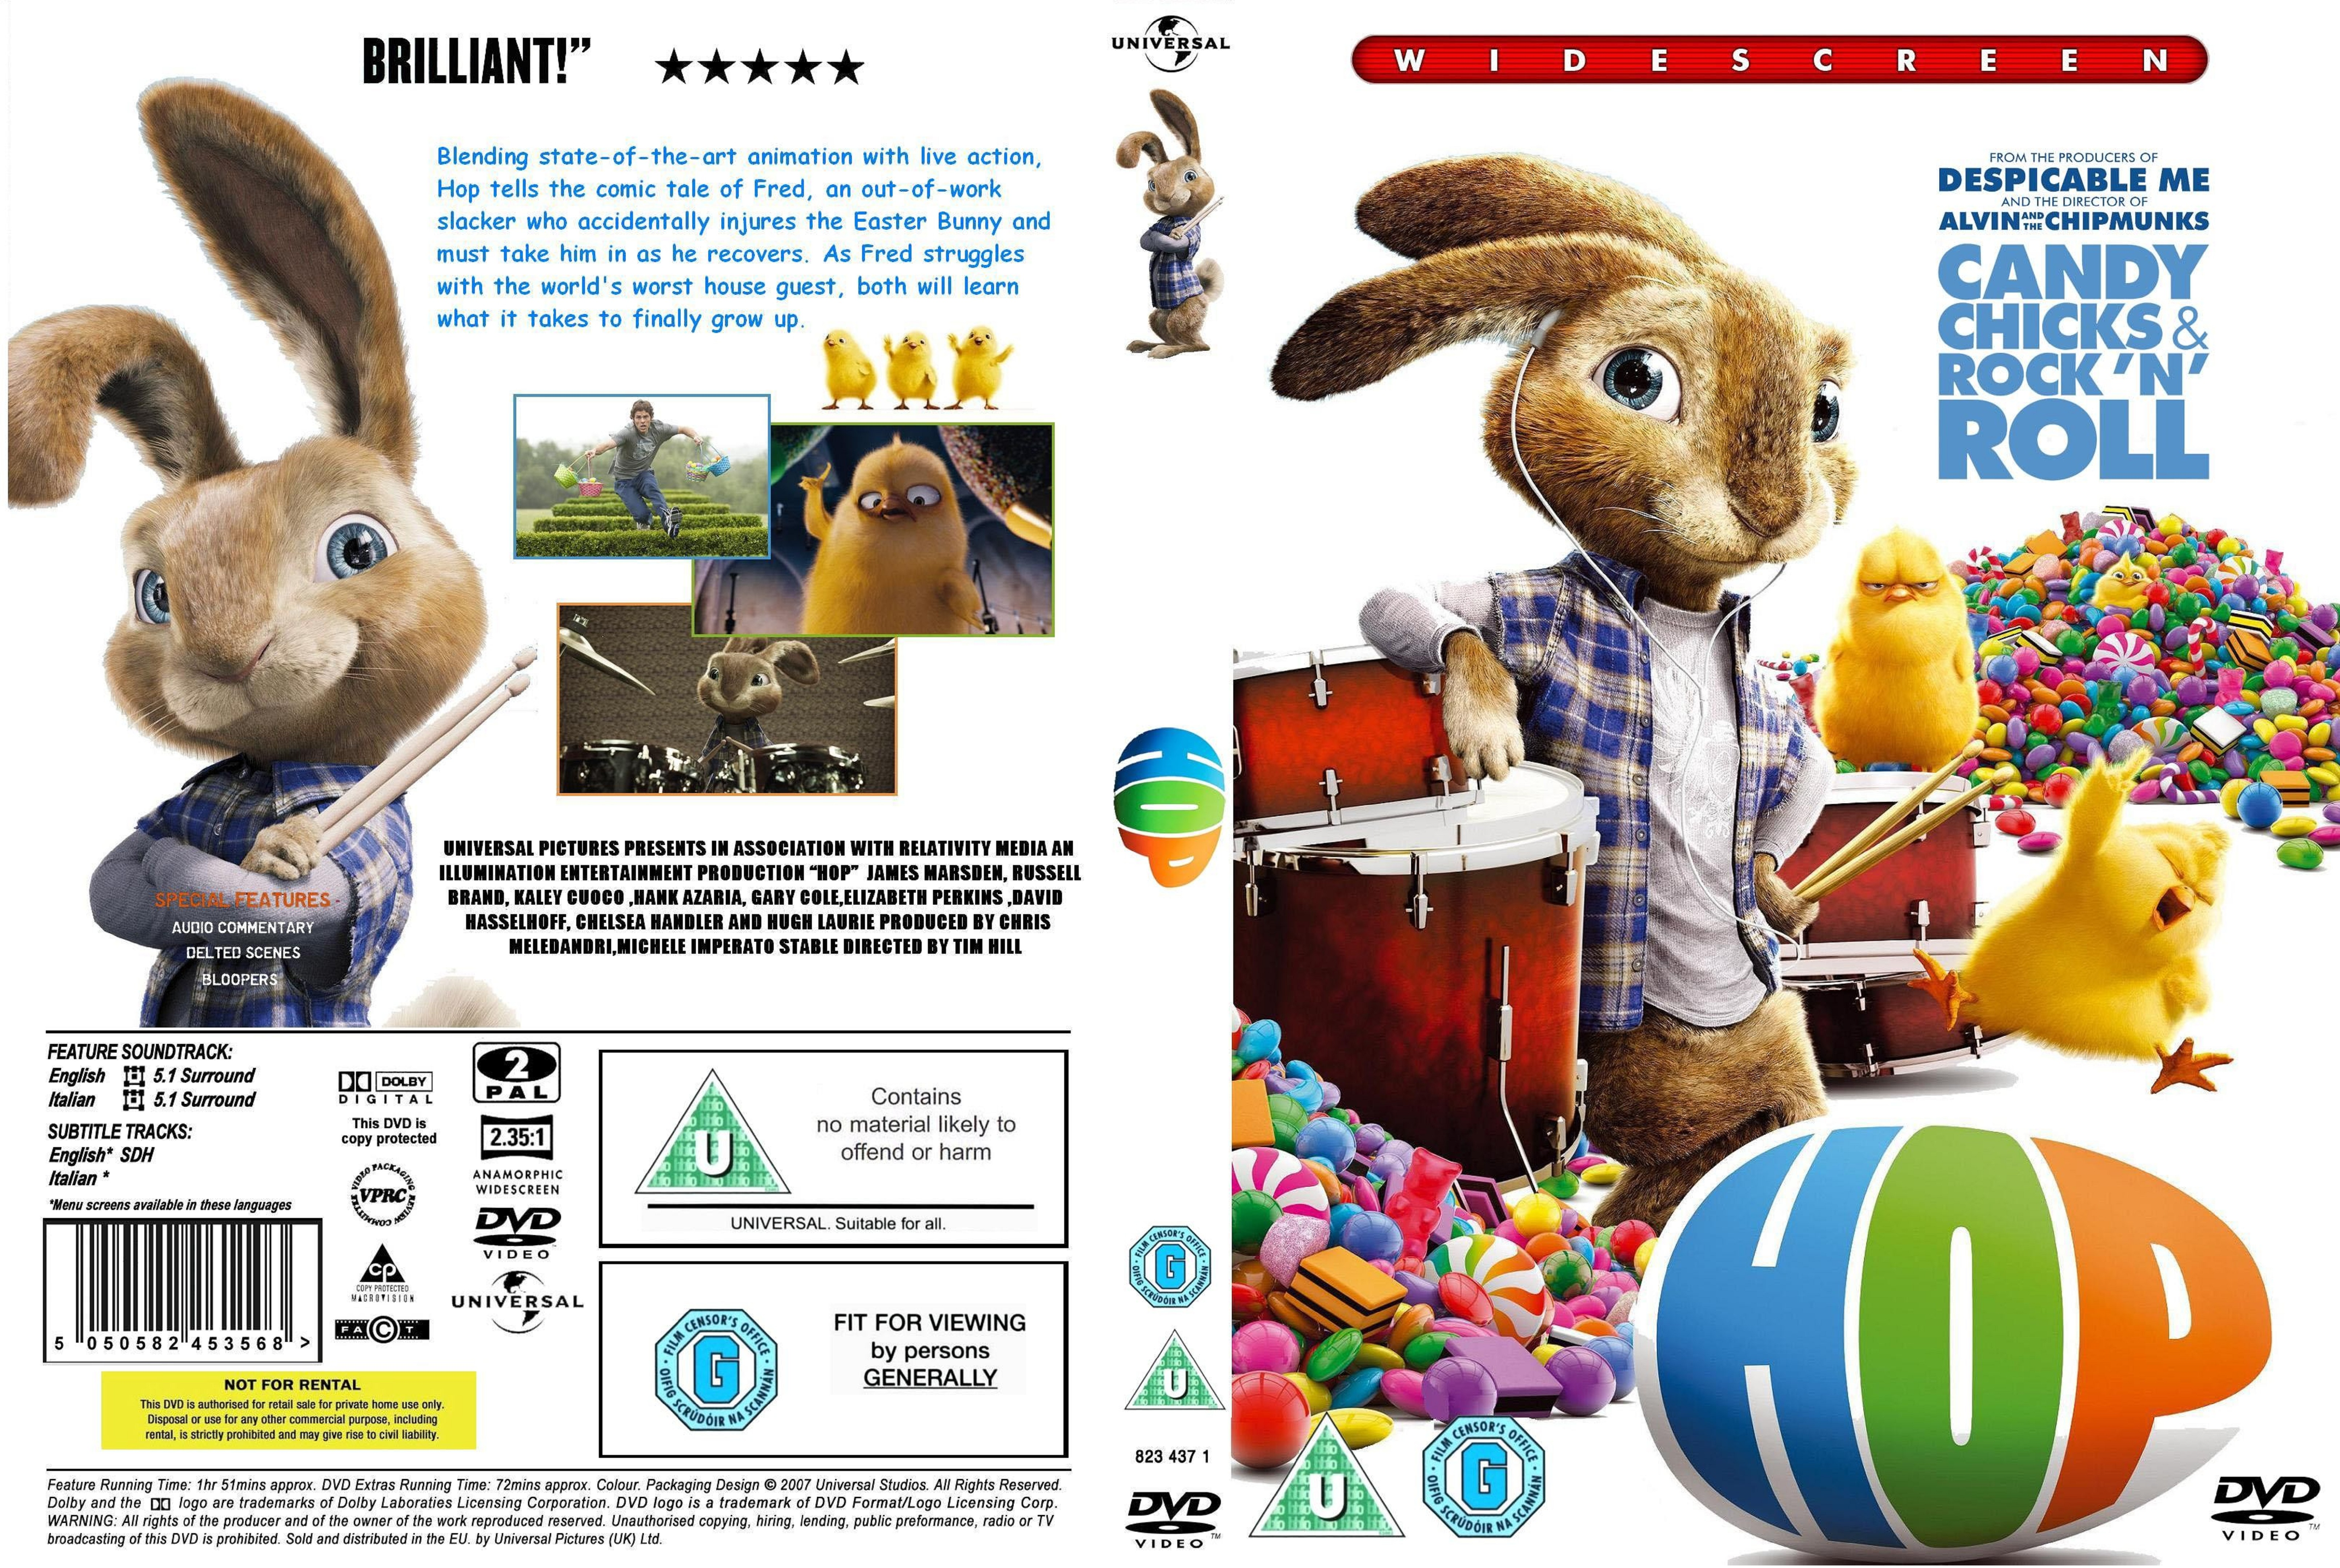 Covers Box Sk Hop 2011 High Quality Dvd Blueray Movie